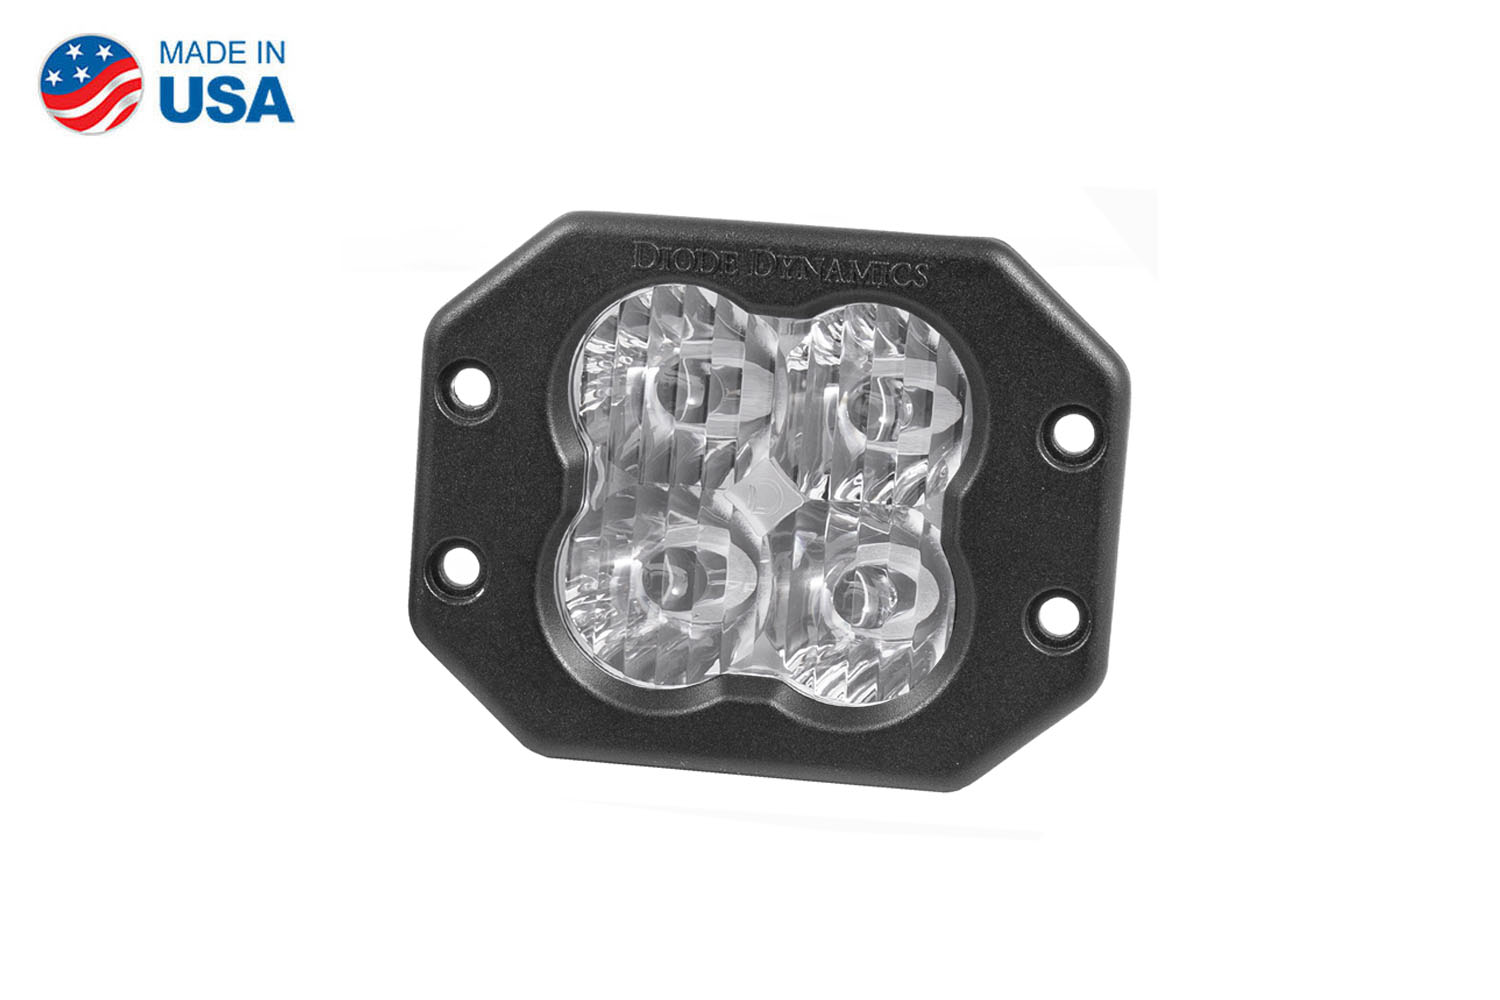 Diode Dynamics Worklight SS3 Sport White SAE Driving Flush (single)